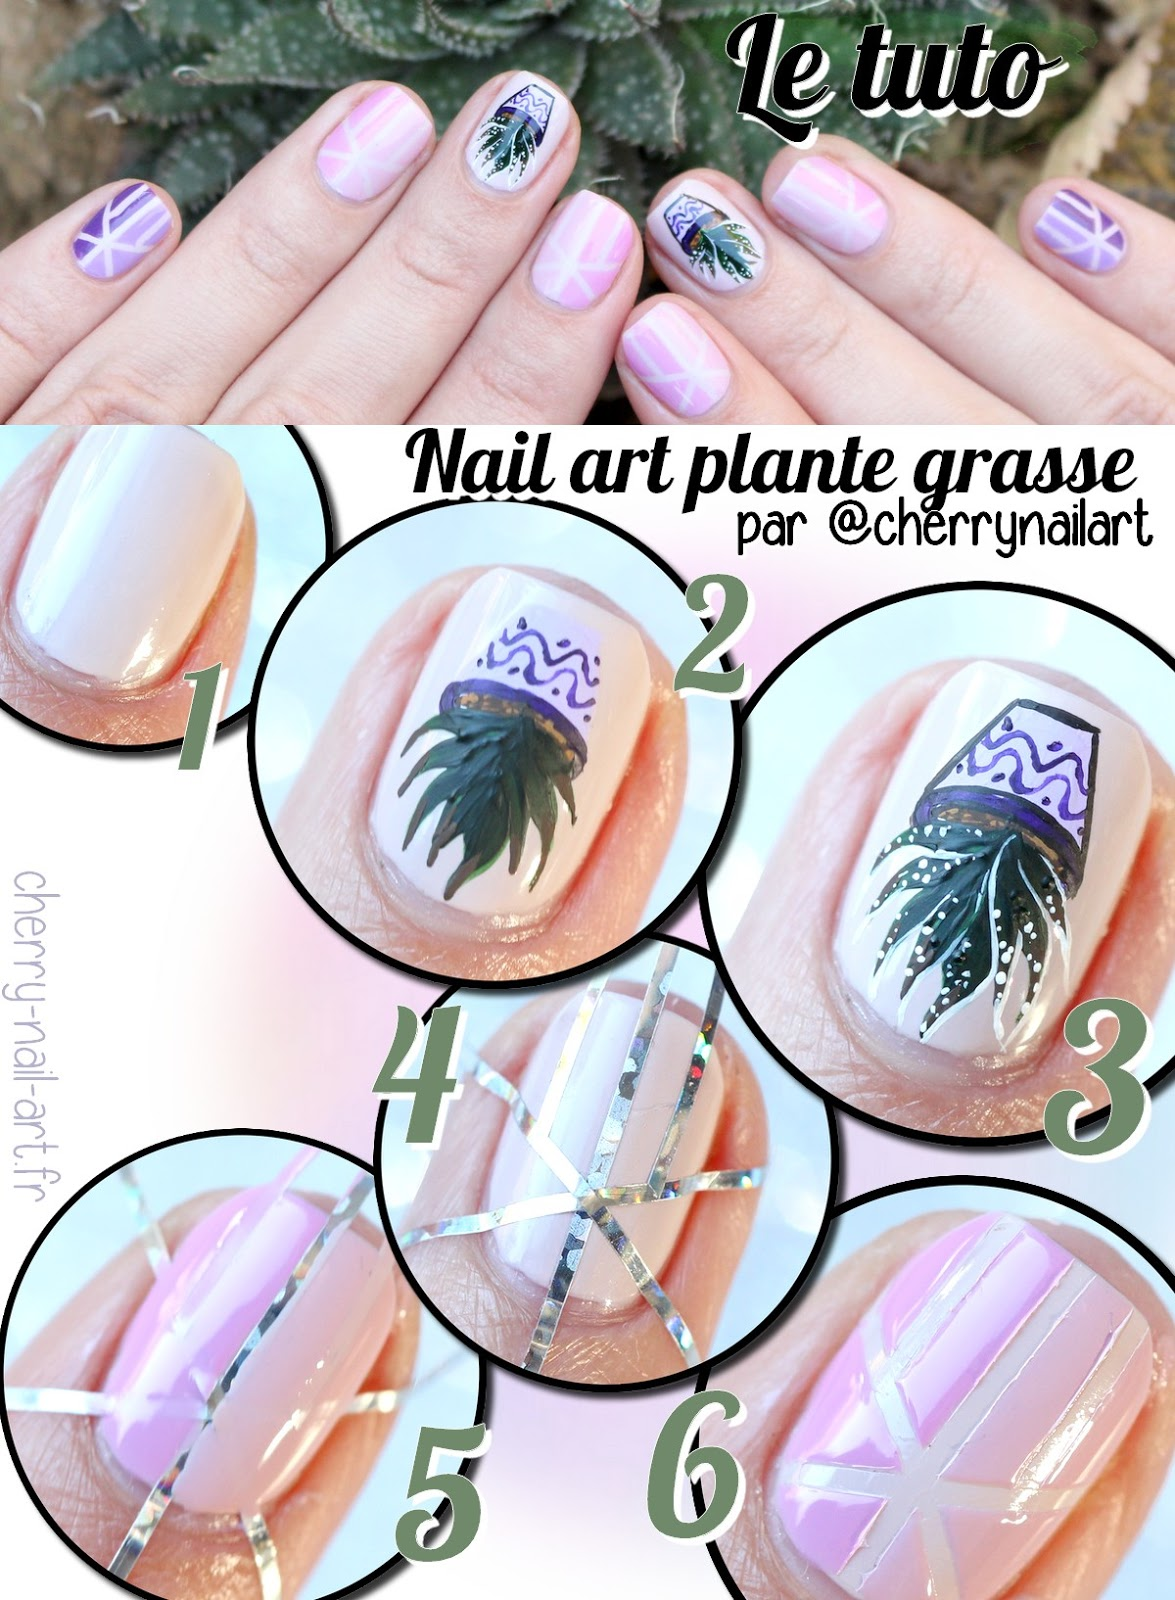 tuto-nail-art-plante-grasse-géométrique-stripping-tape